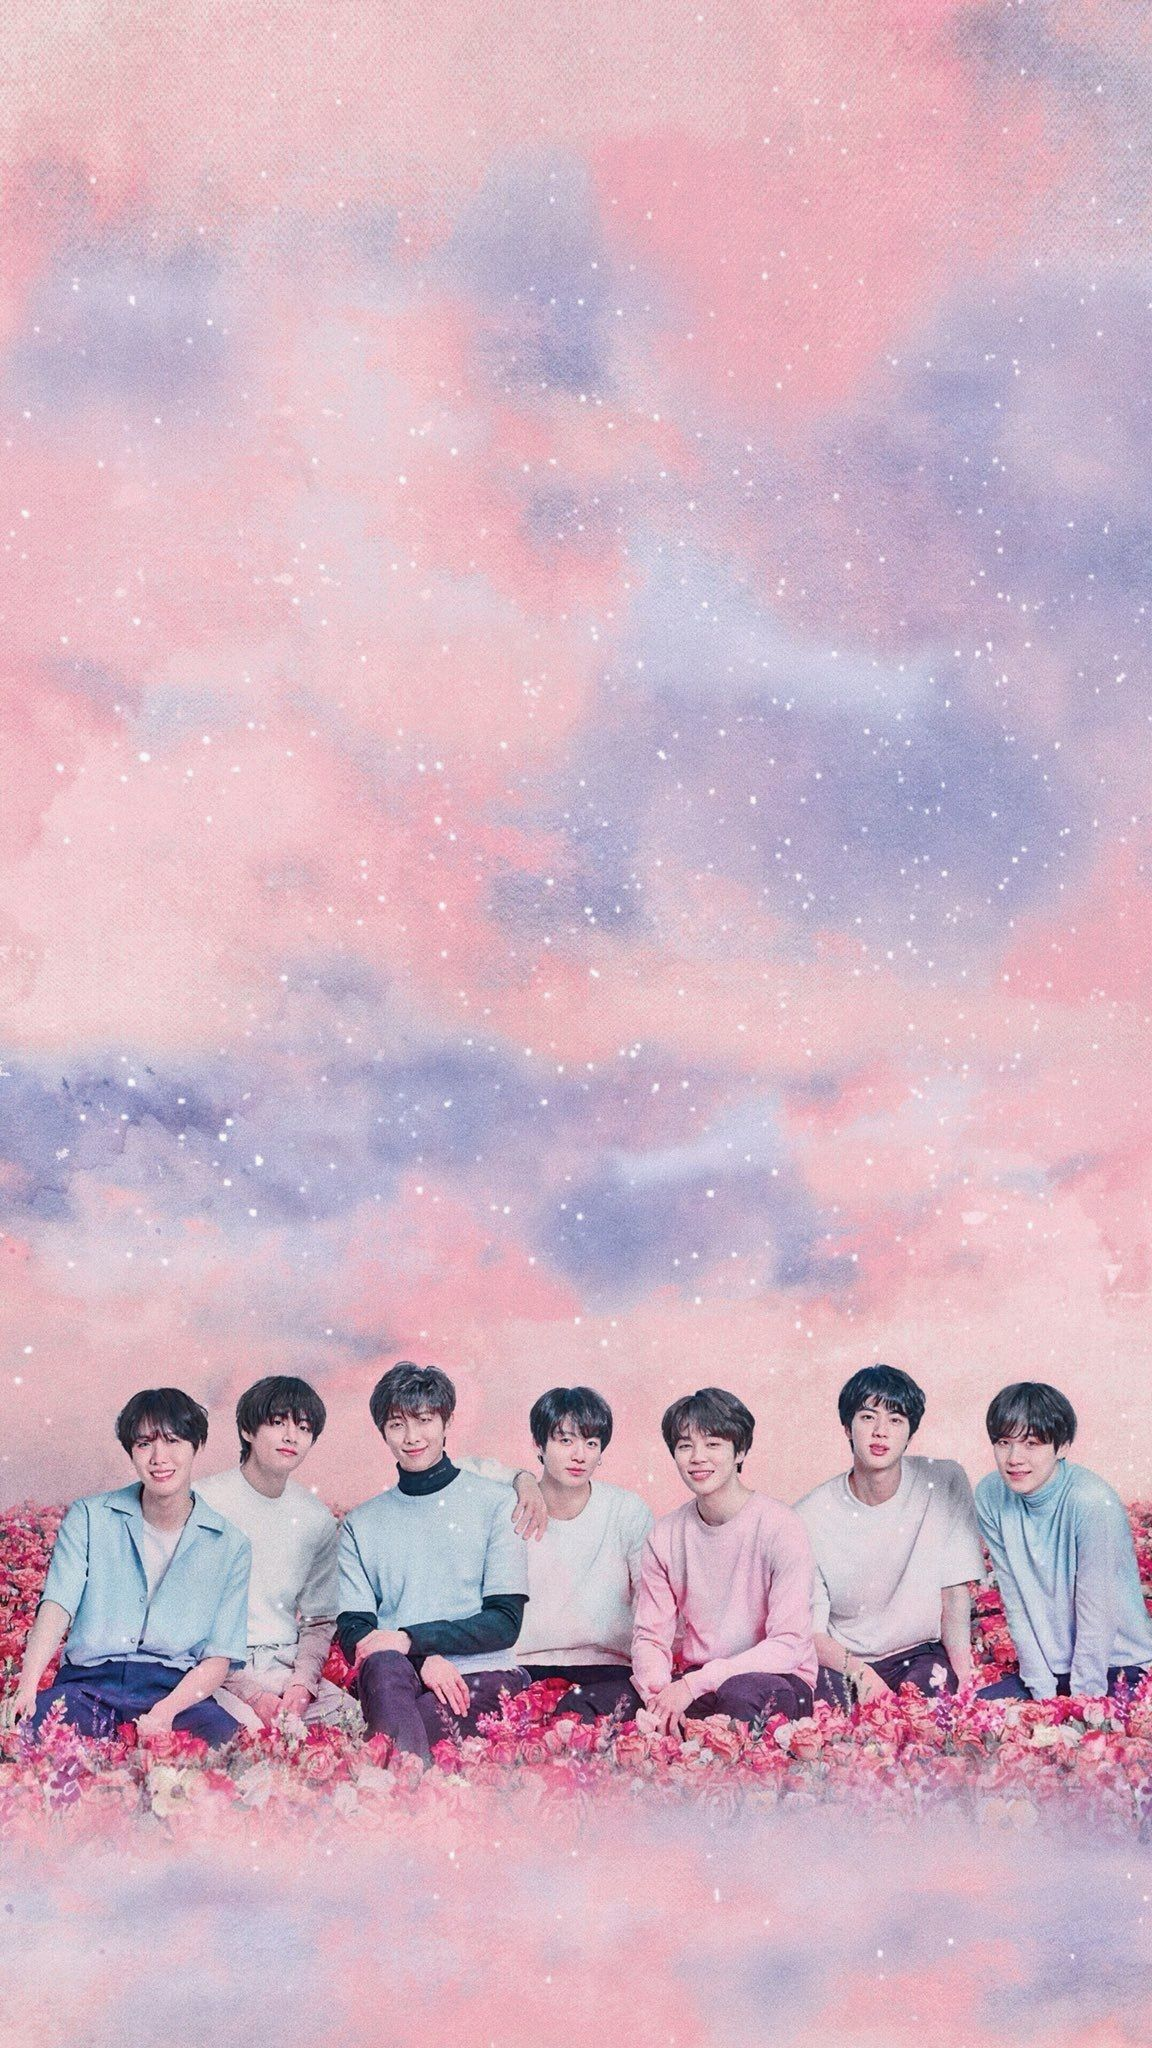 Bts Army Wallpapers Phone Bts Wallpaper Hd 2018 Free